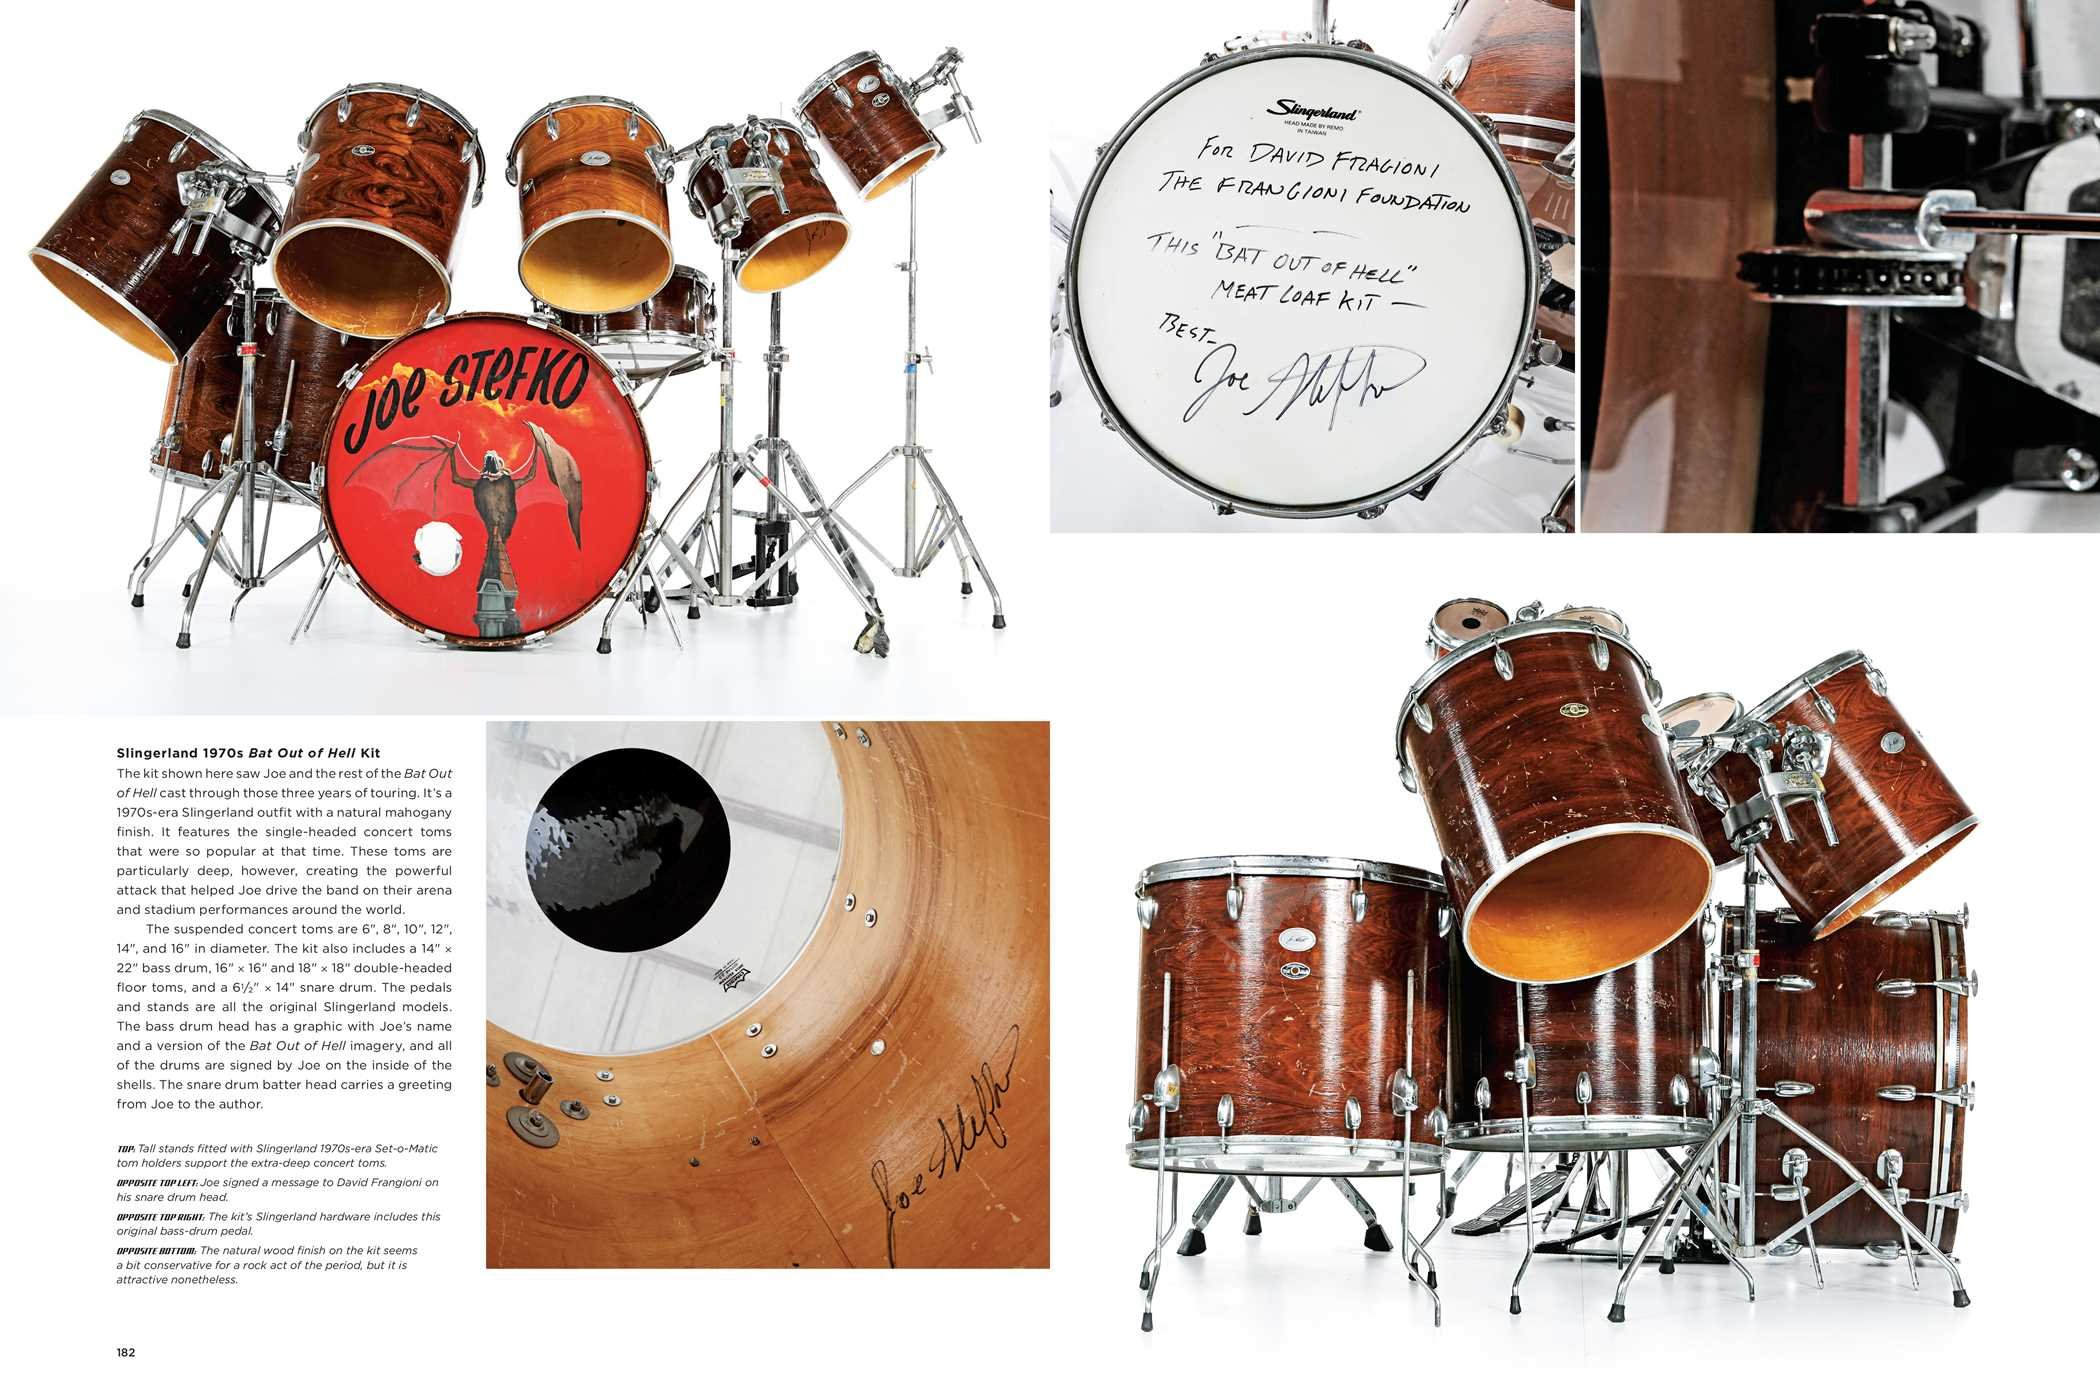 Crash The World S Greatest Drum Kits From Appice To Peart To Van Halen Amazon Co Uk David Frangioni 9781683833048 Books